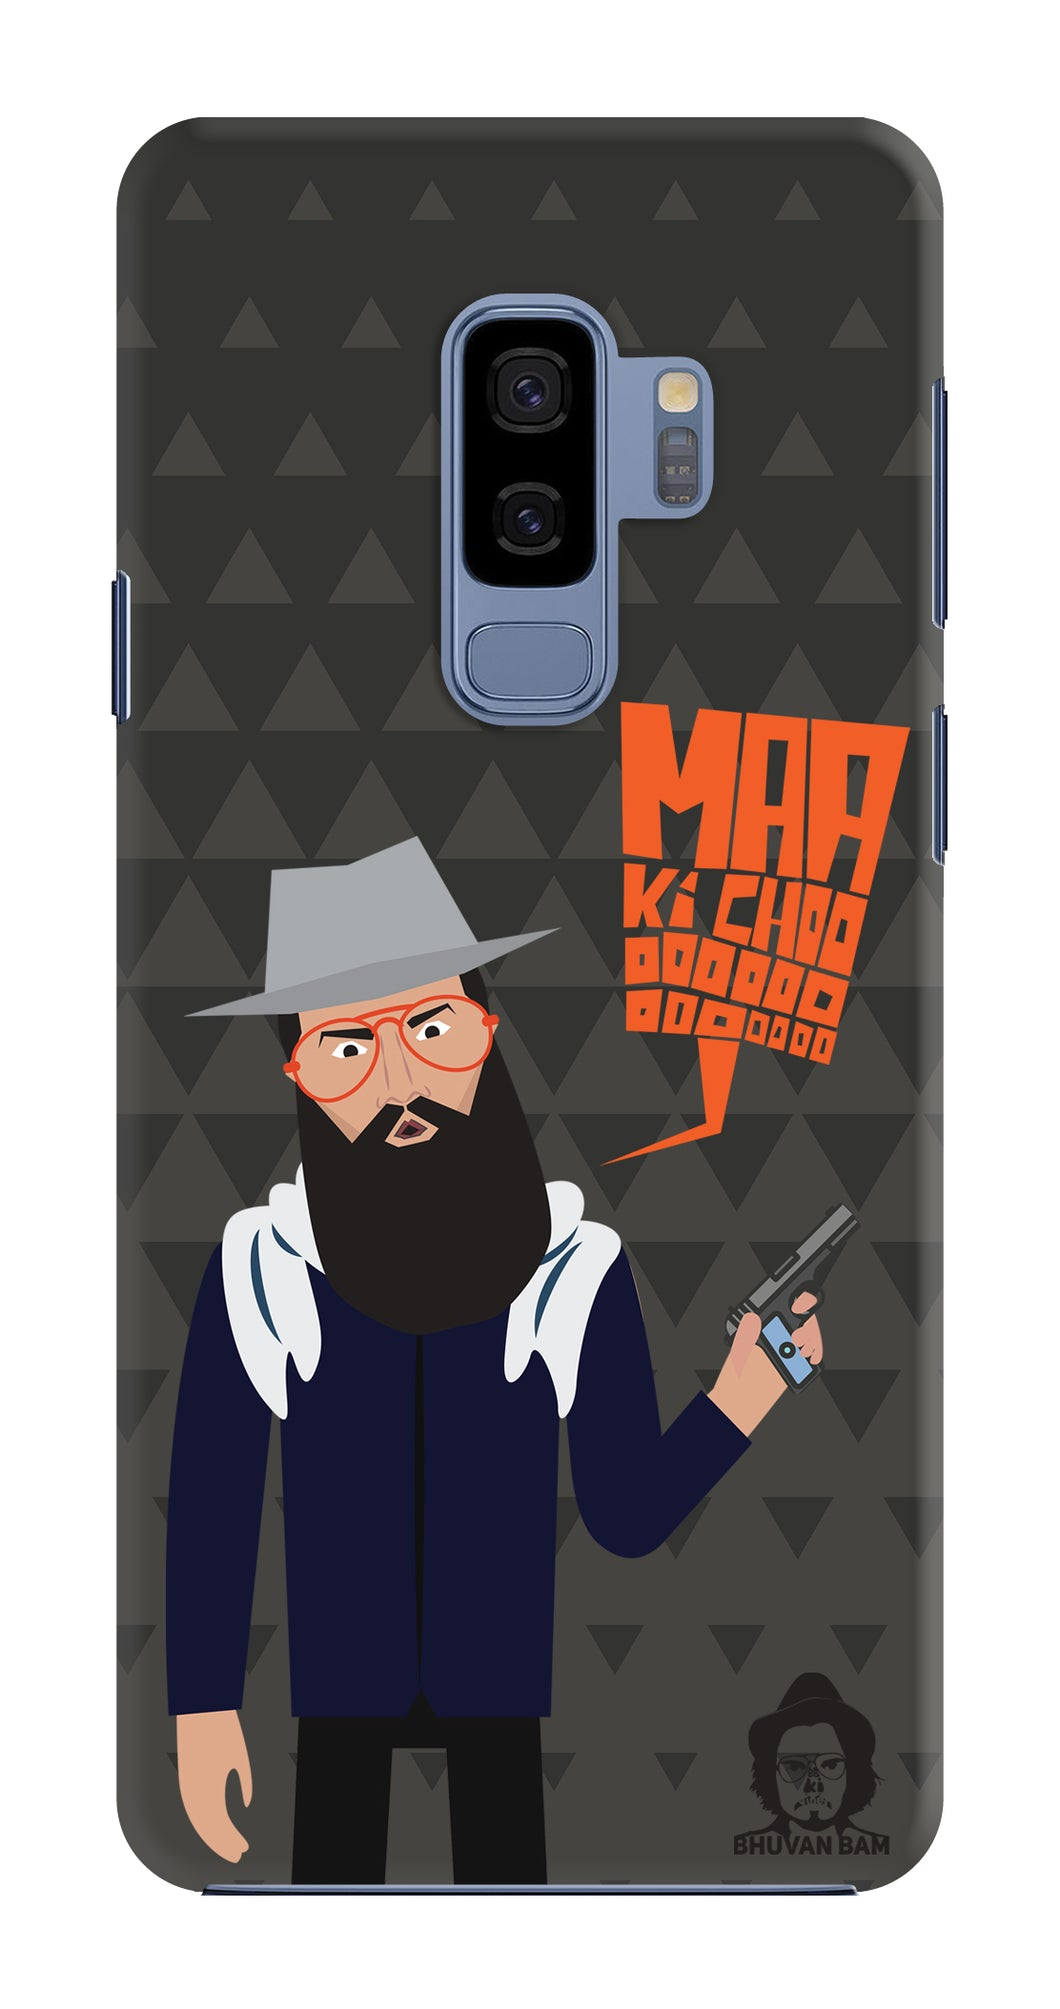 Papa Maaki*** Edition for Samsung Galaxy S9 Plus